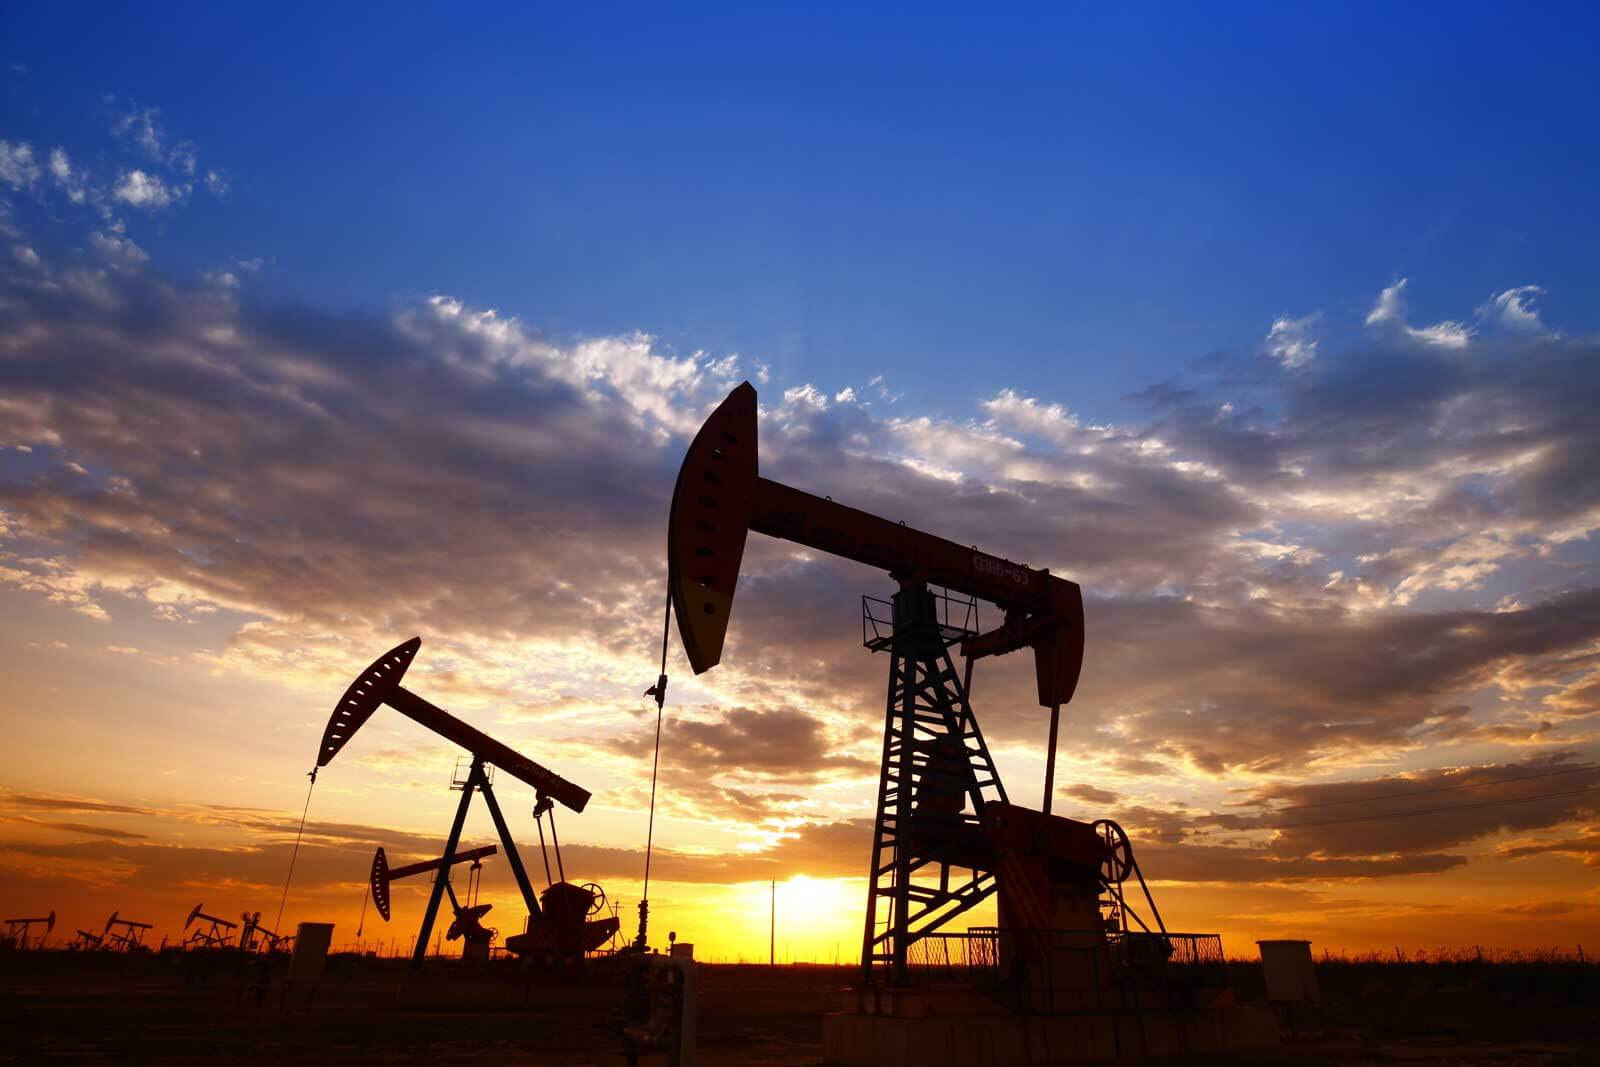 Services - D&B Oilfield Services - Oilfield Services in Texas